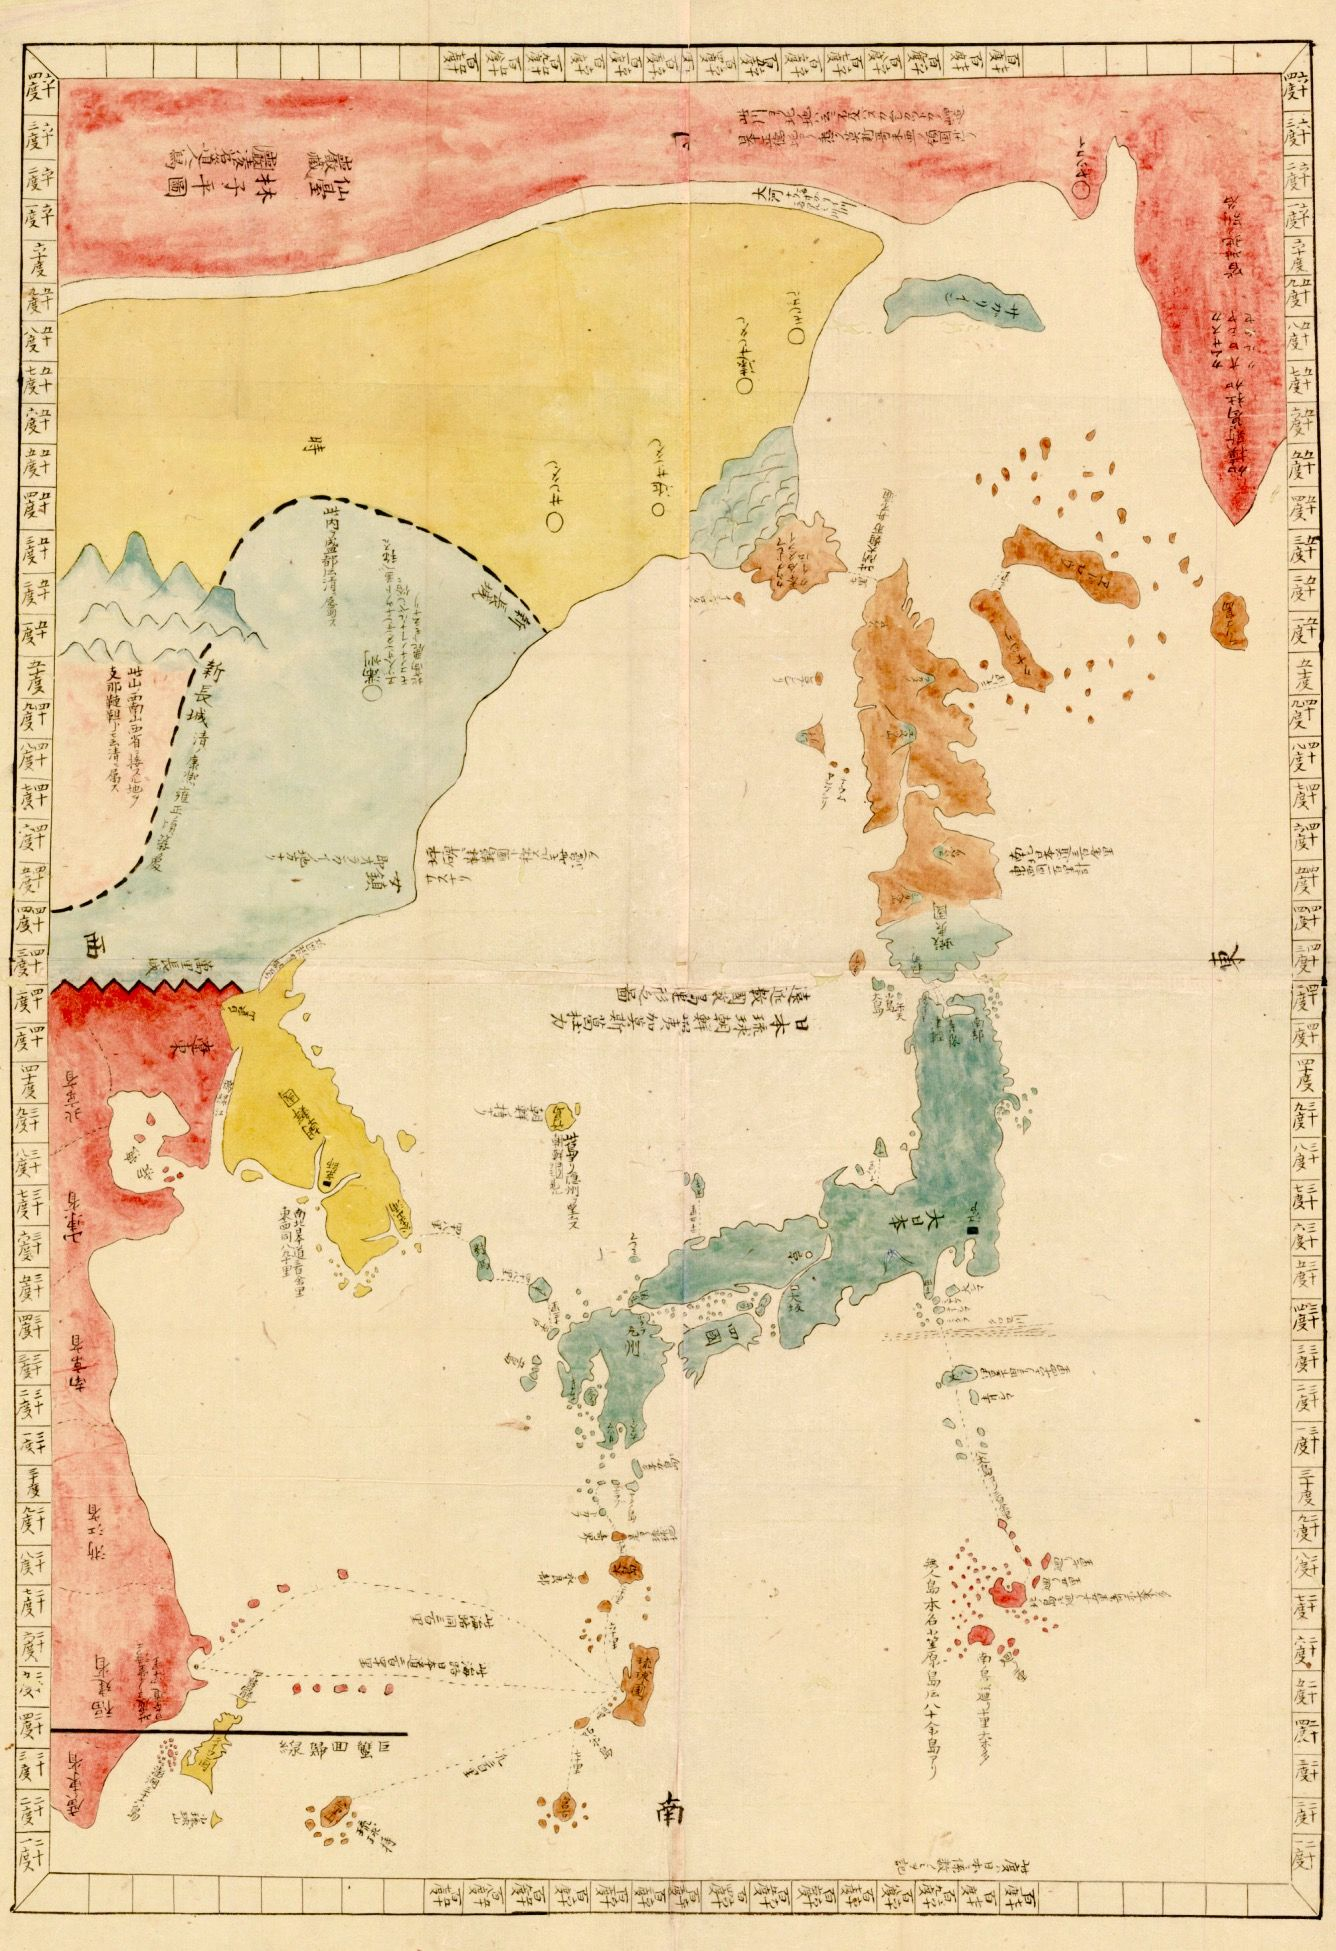 1800 japanese illustrated general route map of three countries 1800 japanese illustrated general route map of three countries japan korea russia creator hayashi shihei 1738 1793 gumiabroncs Gallery